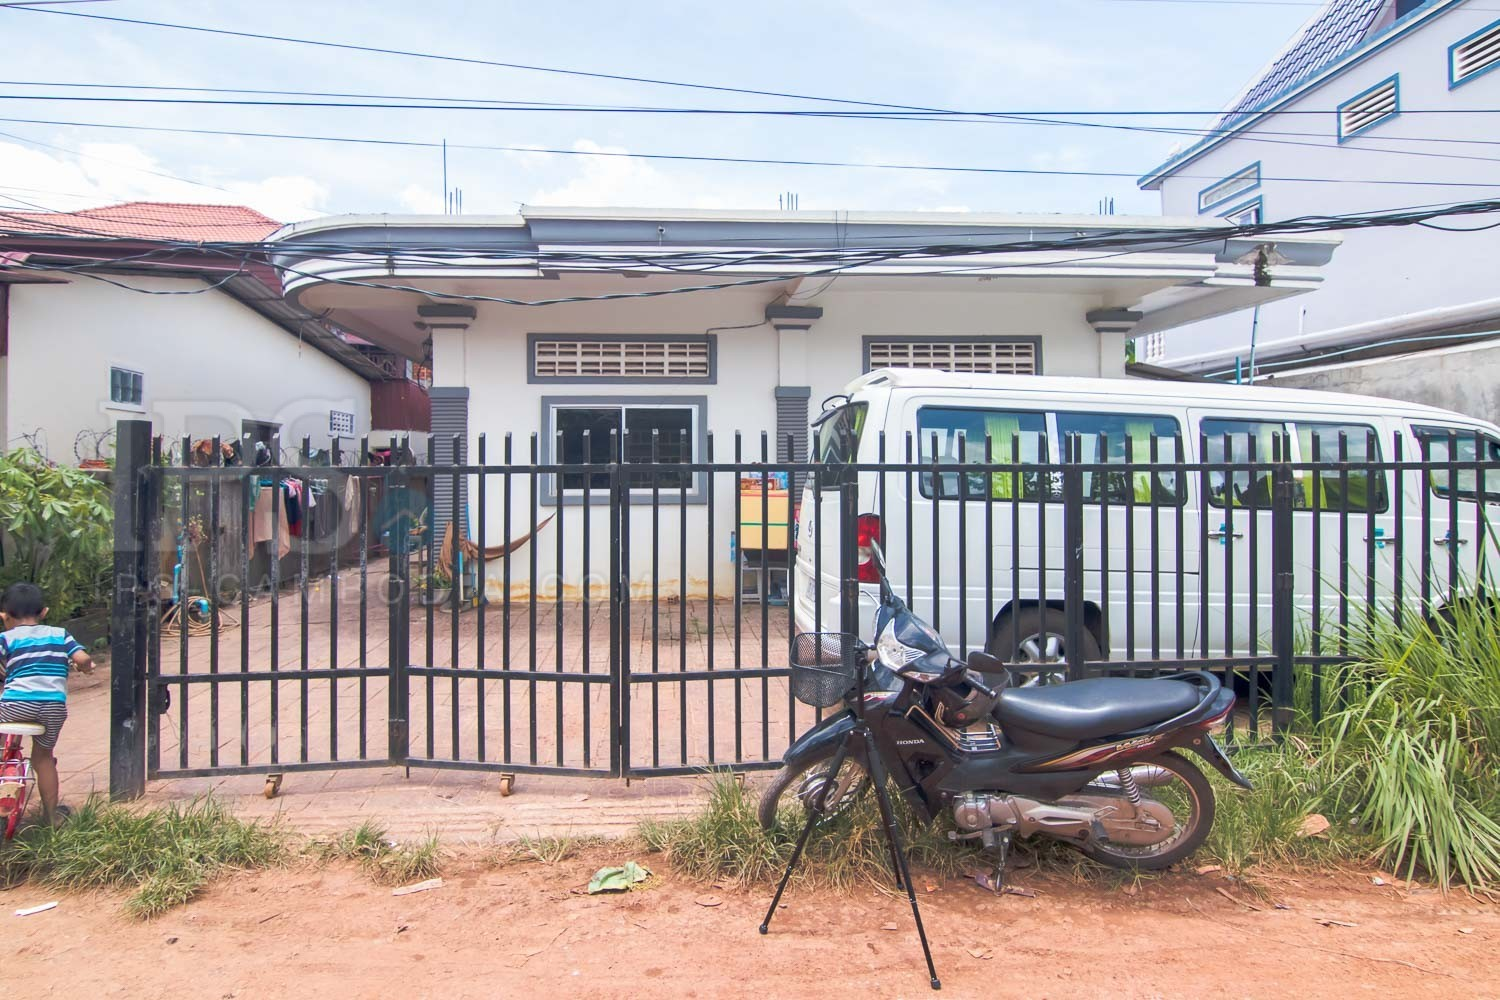 406 sqm Land and 4 Room House For Sale -  Wat Bo, Siem Reap